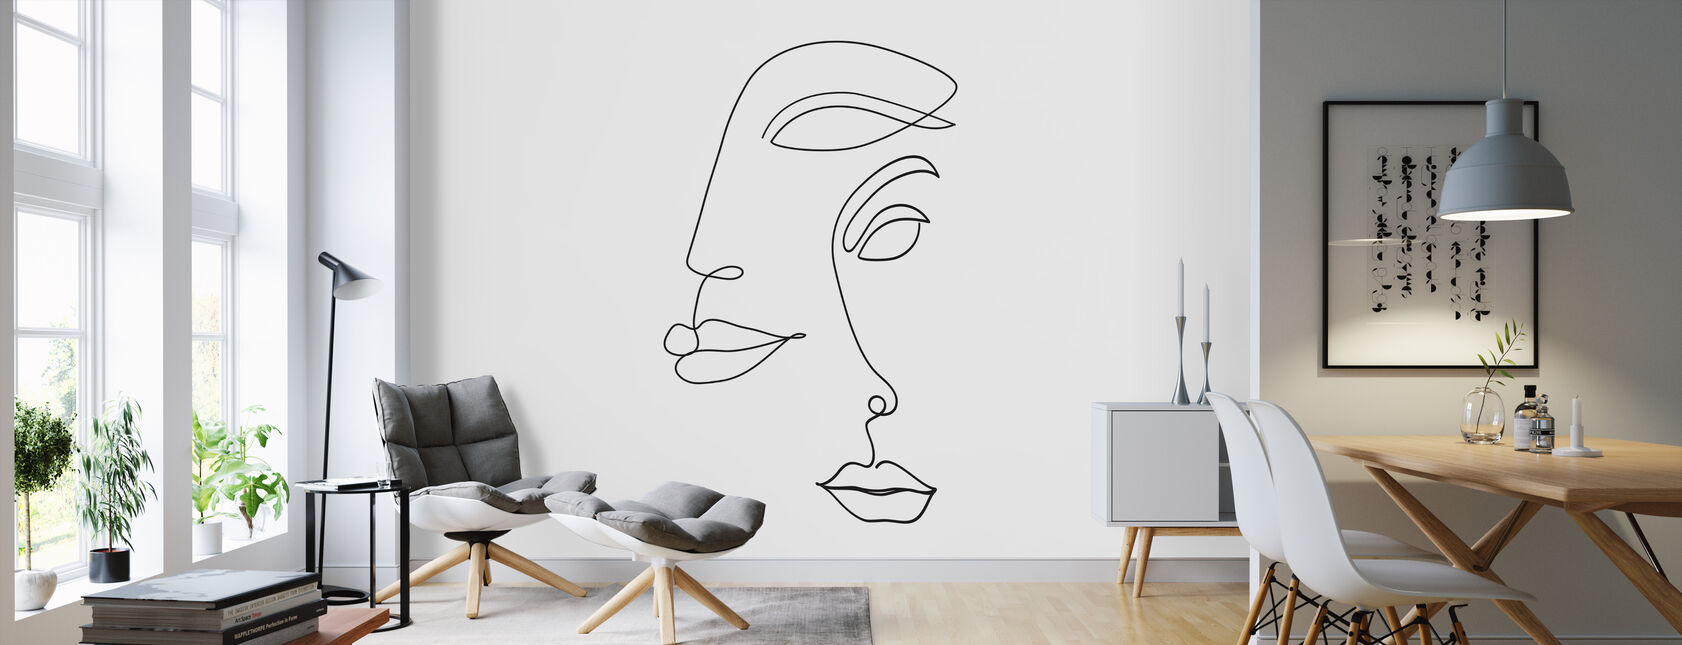 Two Faced - Wallpaper - Living Room